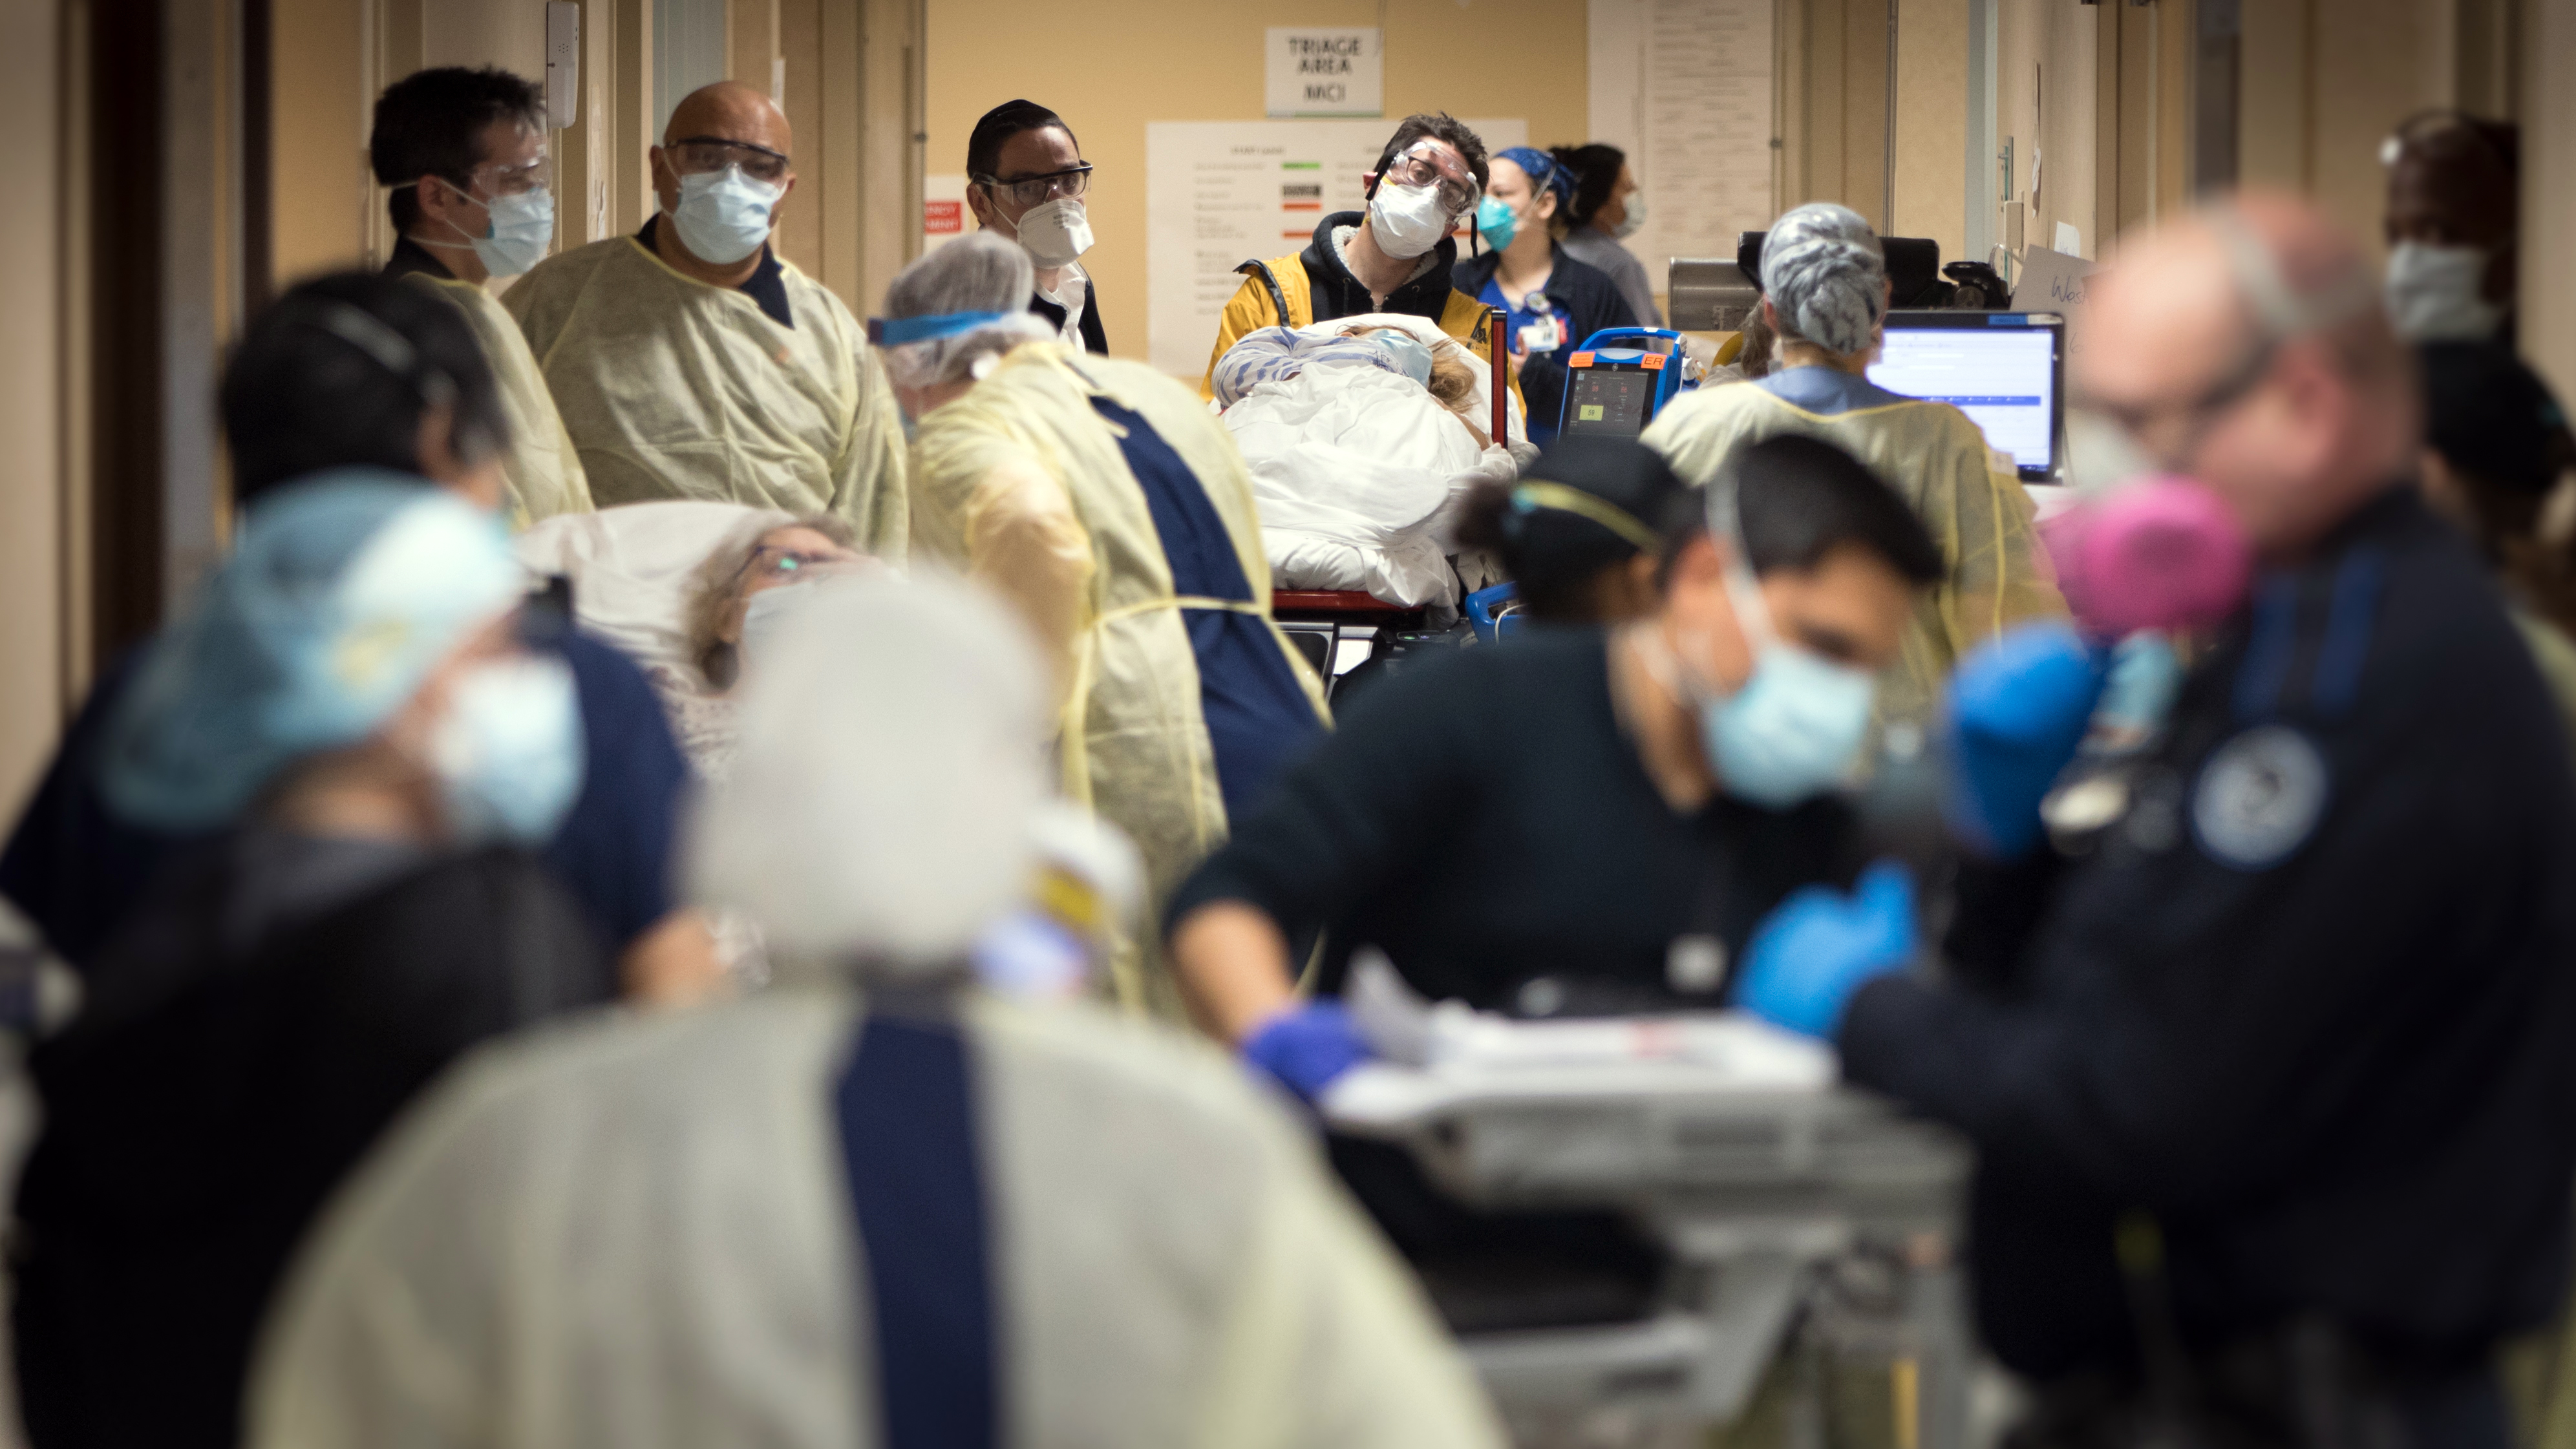 Doctors at Mount Sinai South Nassau hospital treat patients in Oceanside, New York, on April 13. (Jeffrey Basinger/Newsday via Getty Images)